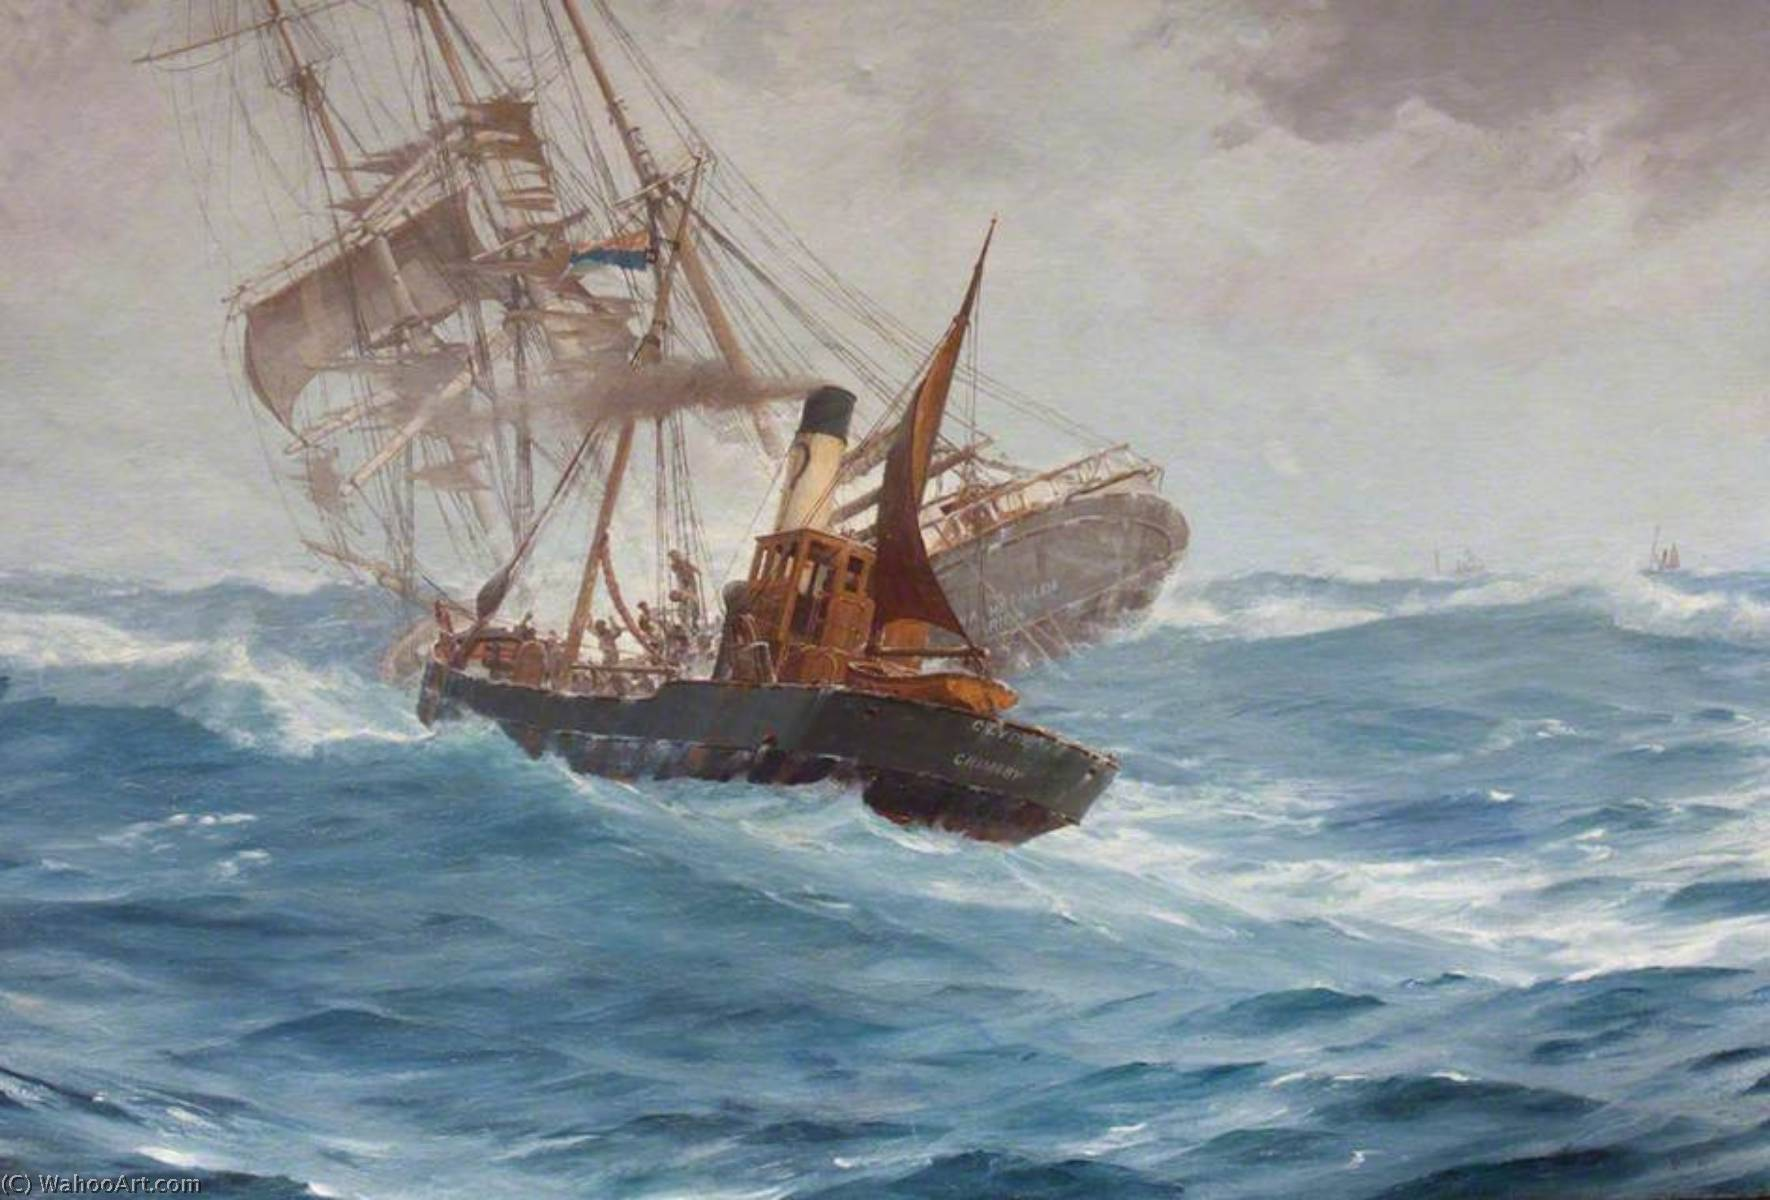 The Rescue of the 'Anna Mathilda' by the Trawler 'Clyde', GY 317, Oil On Canvas by Thomas Jacques Somerscales (1842-1927)